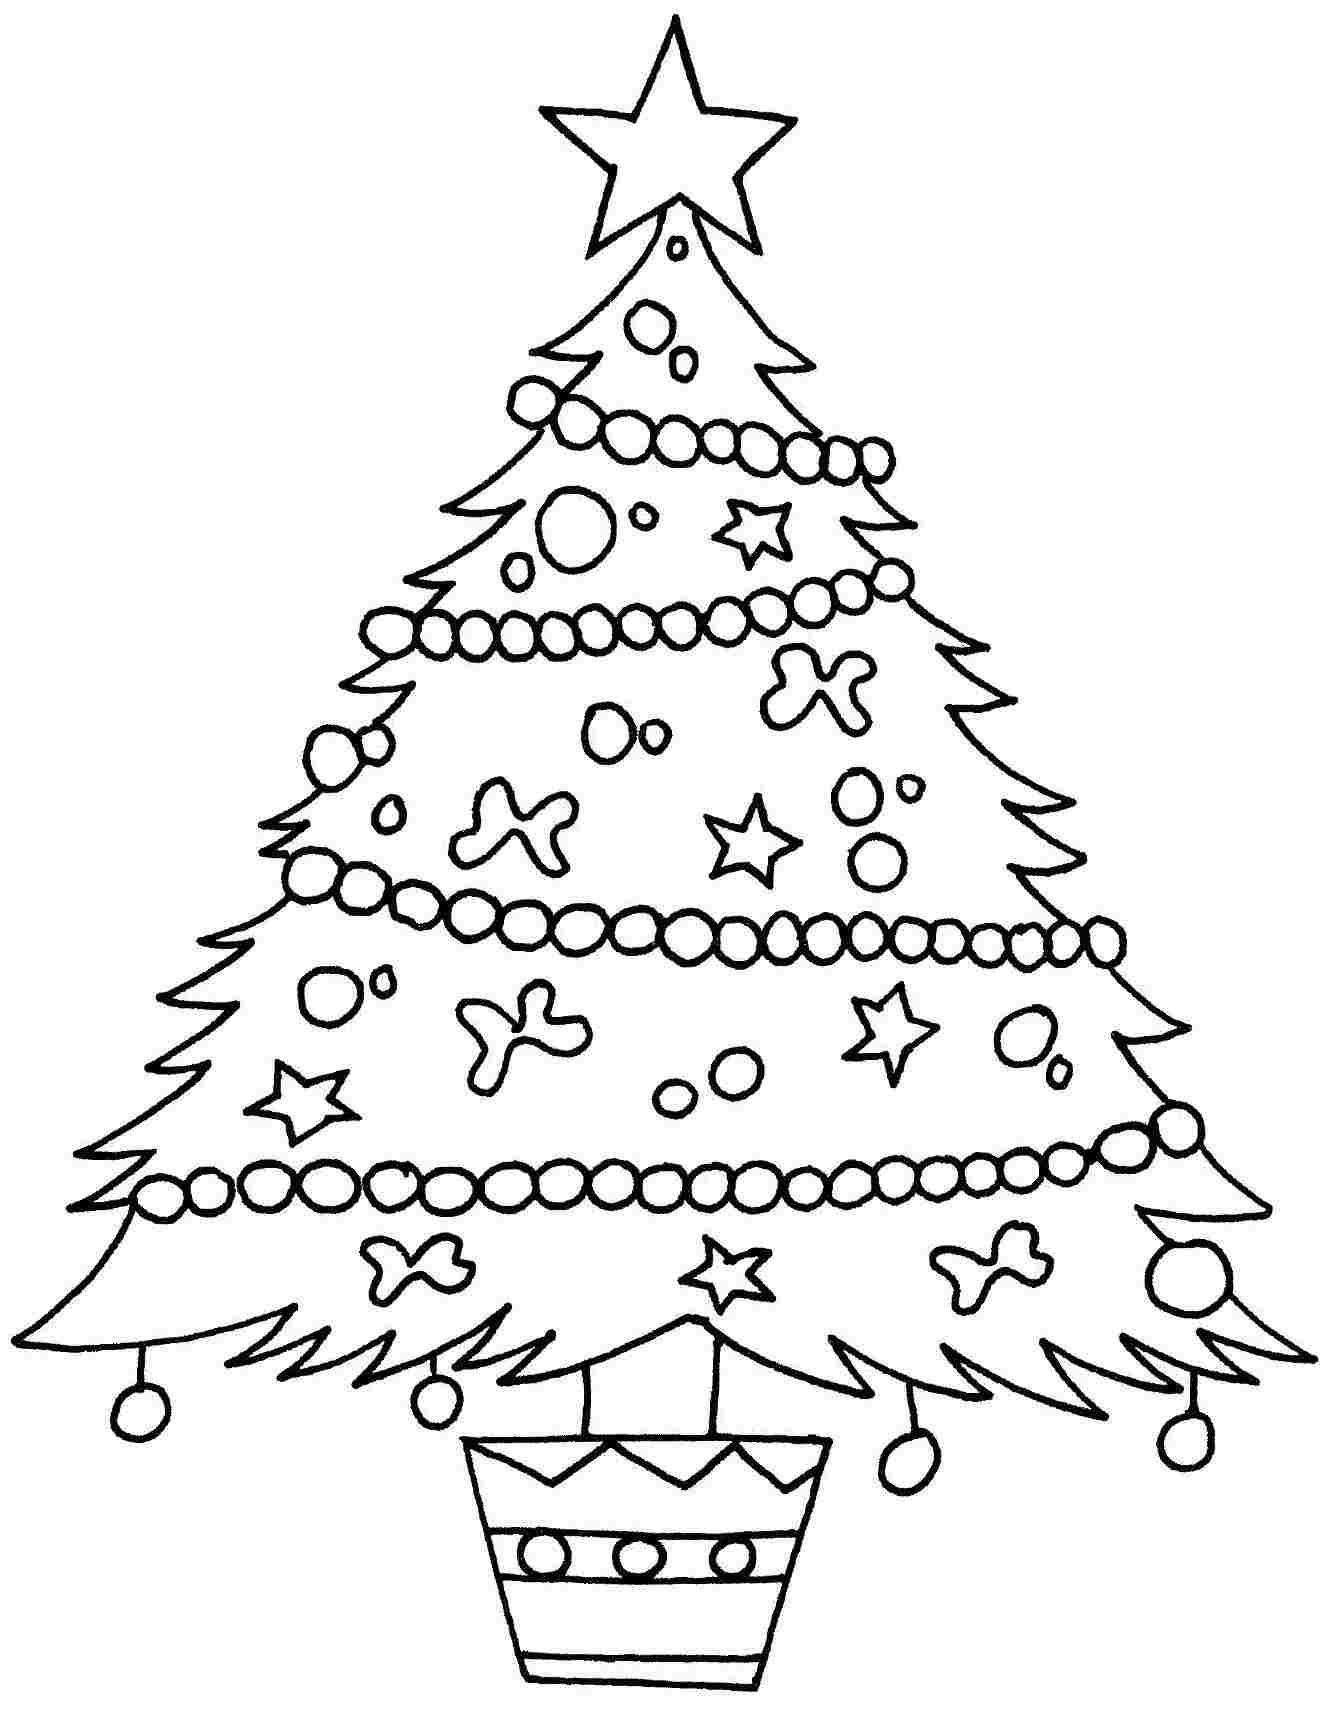 Christmas Tree Coloring Page Template 1 Work Stuff Pinterest